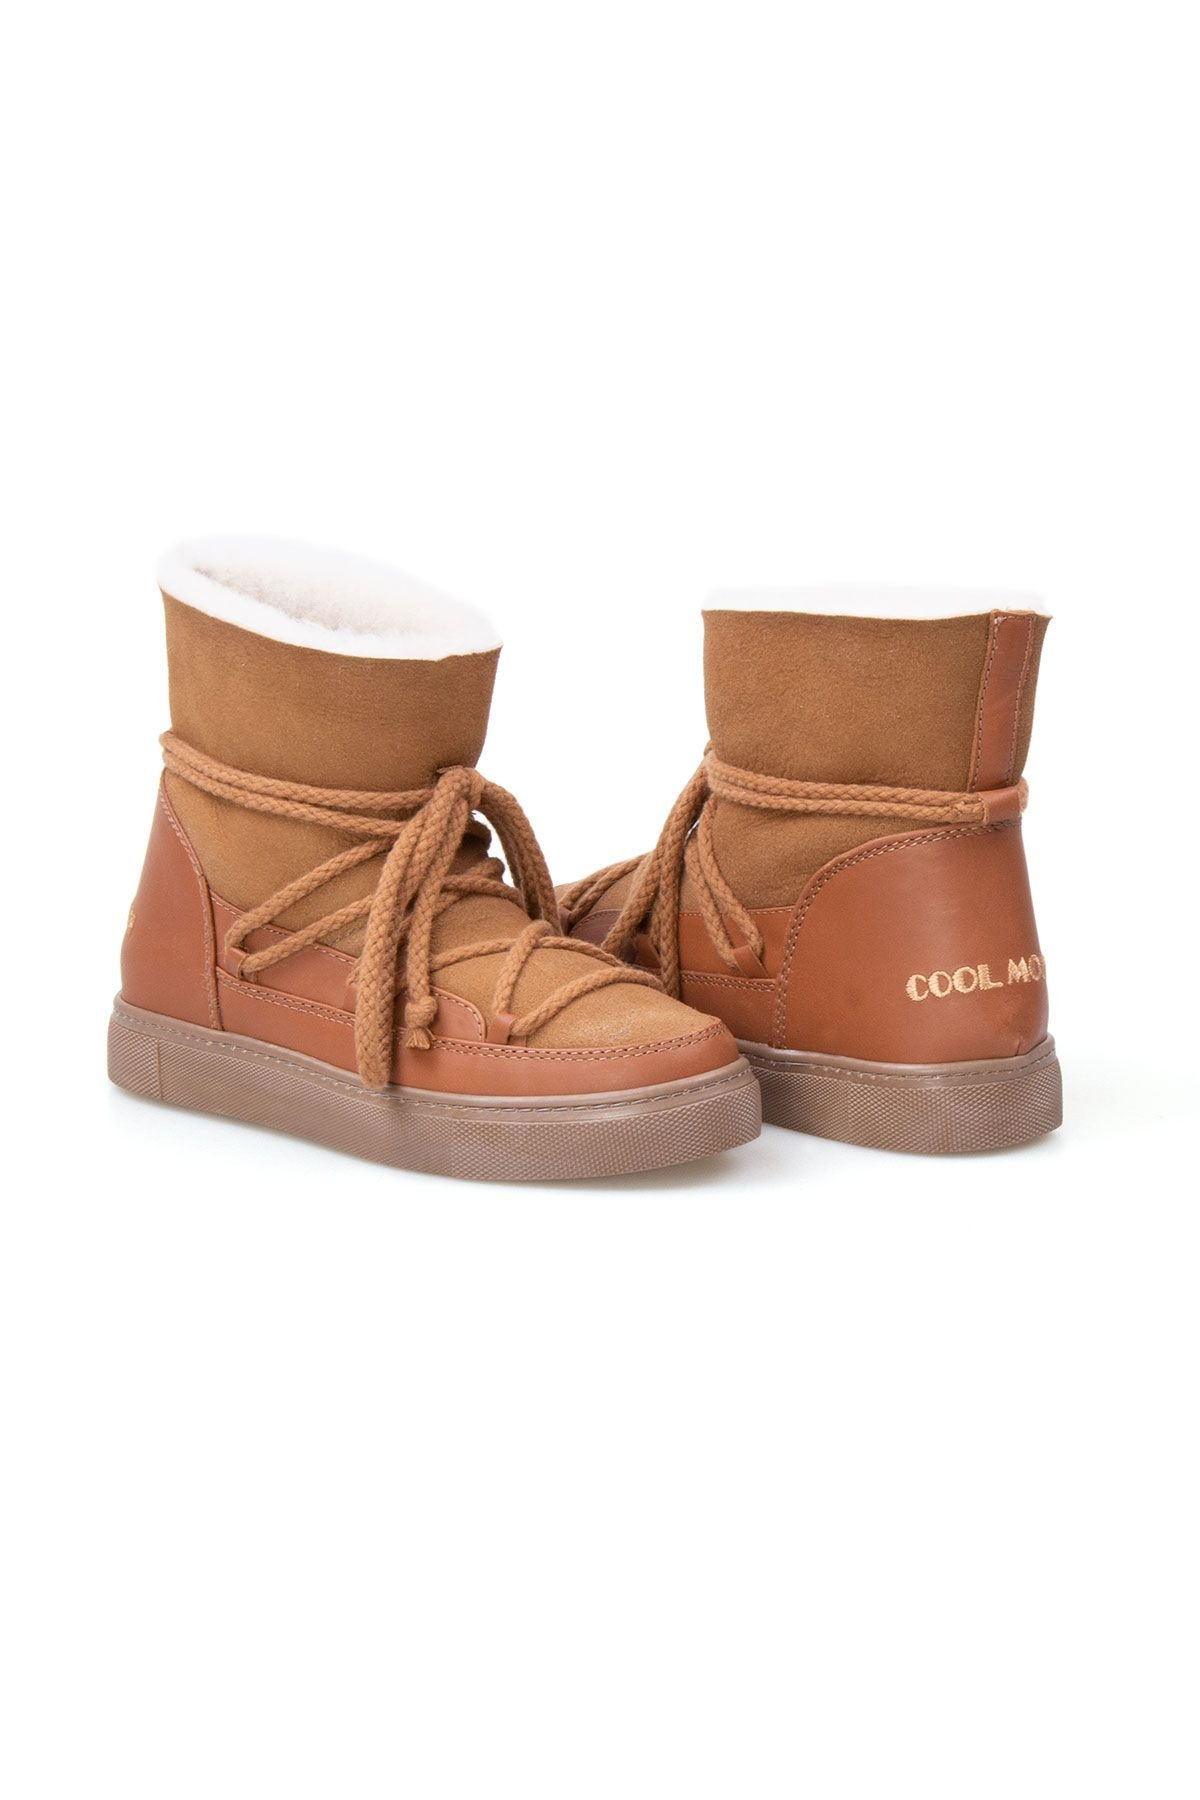 Cool Moon Genuine Suede Shearling Lined Women's Sneaker 355050 Ginger